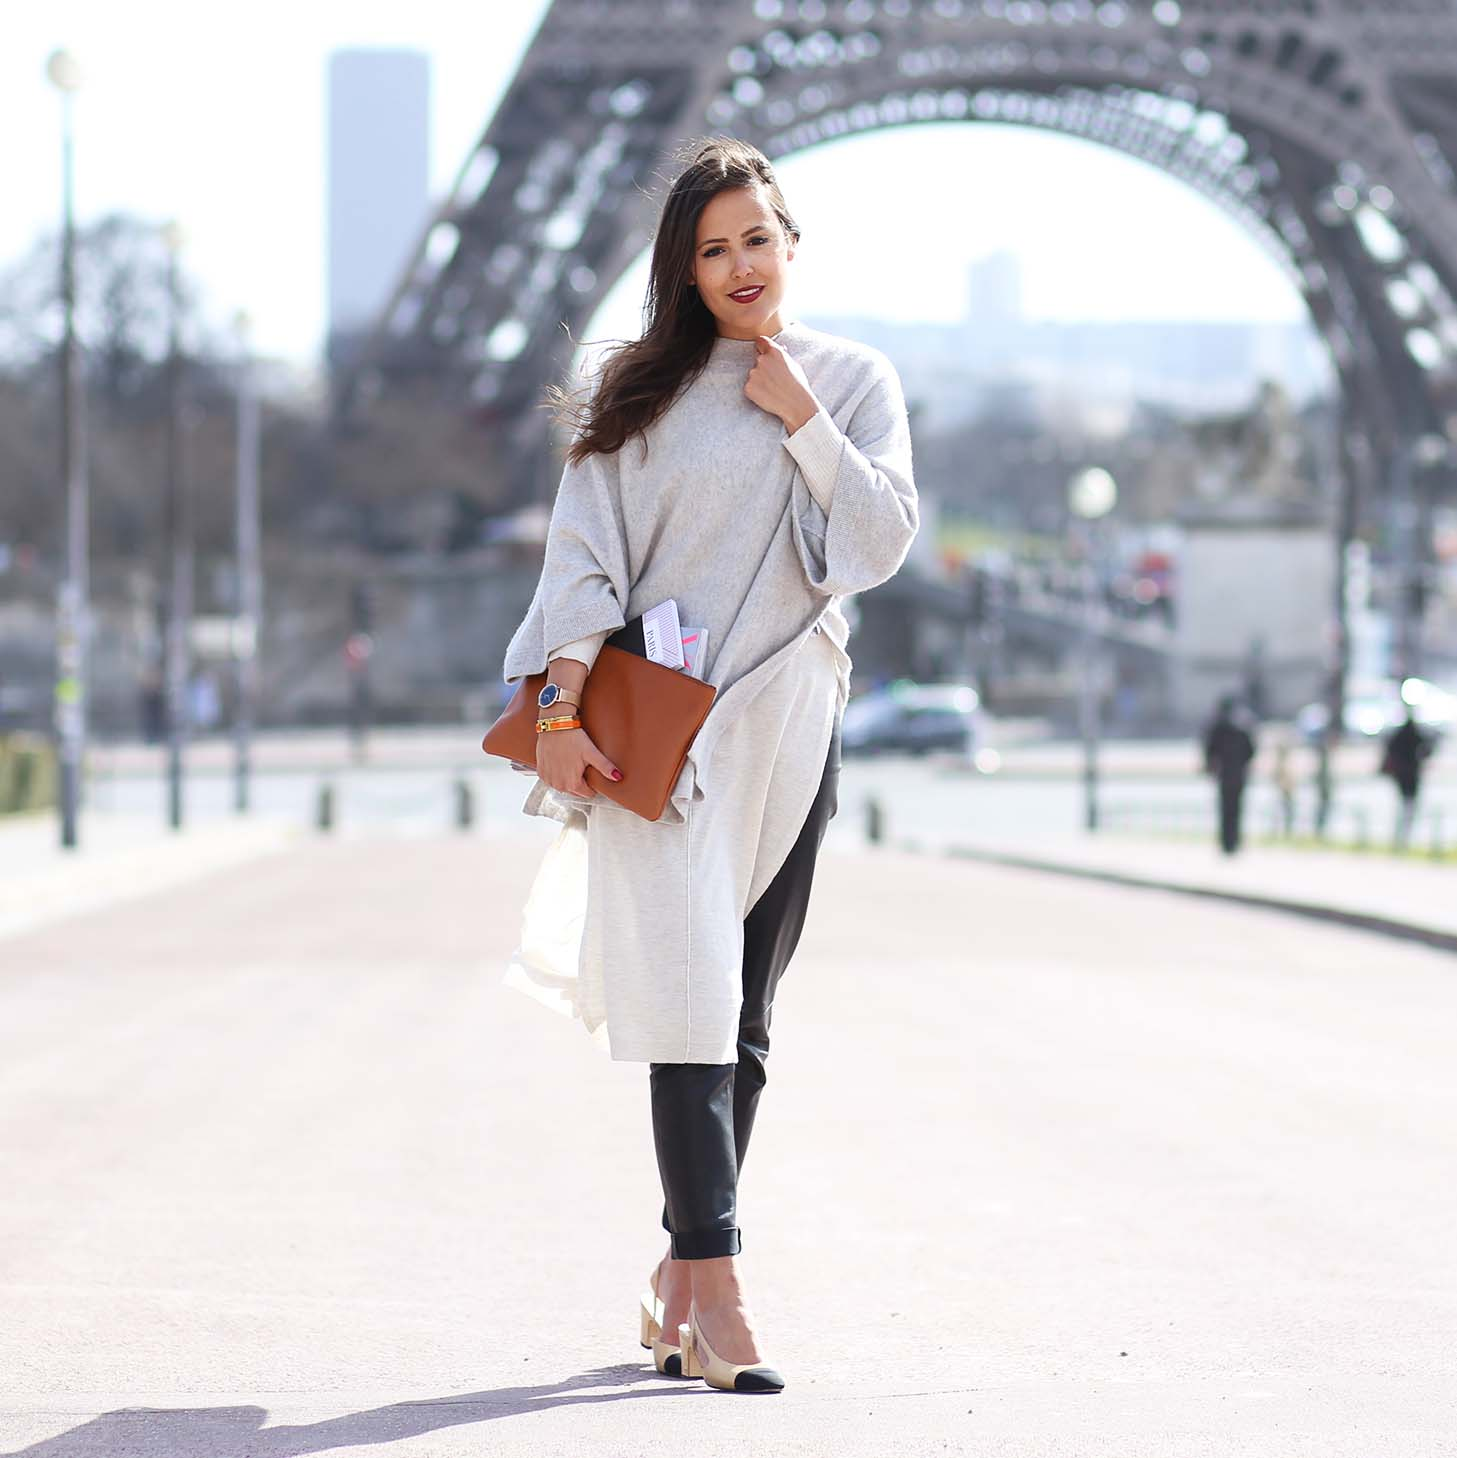 PARIS STREETSTYLE – FRENCH VOGUE AND EIFFELTOWER VIEW